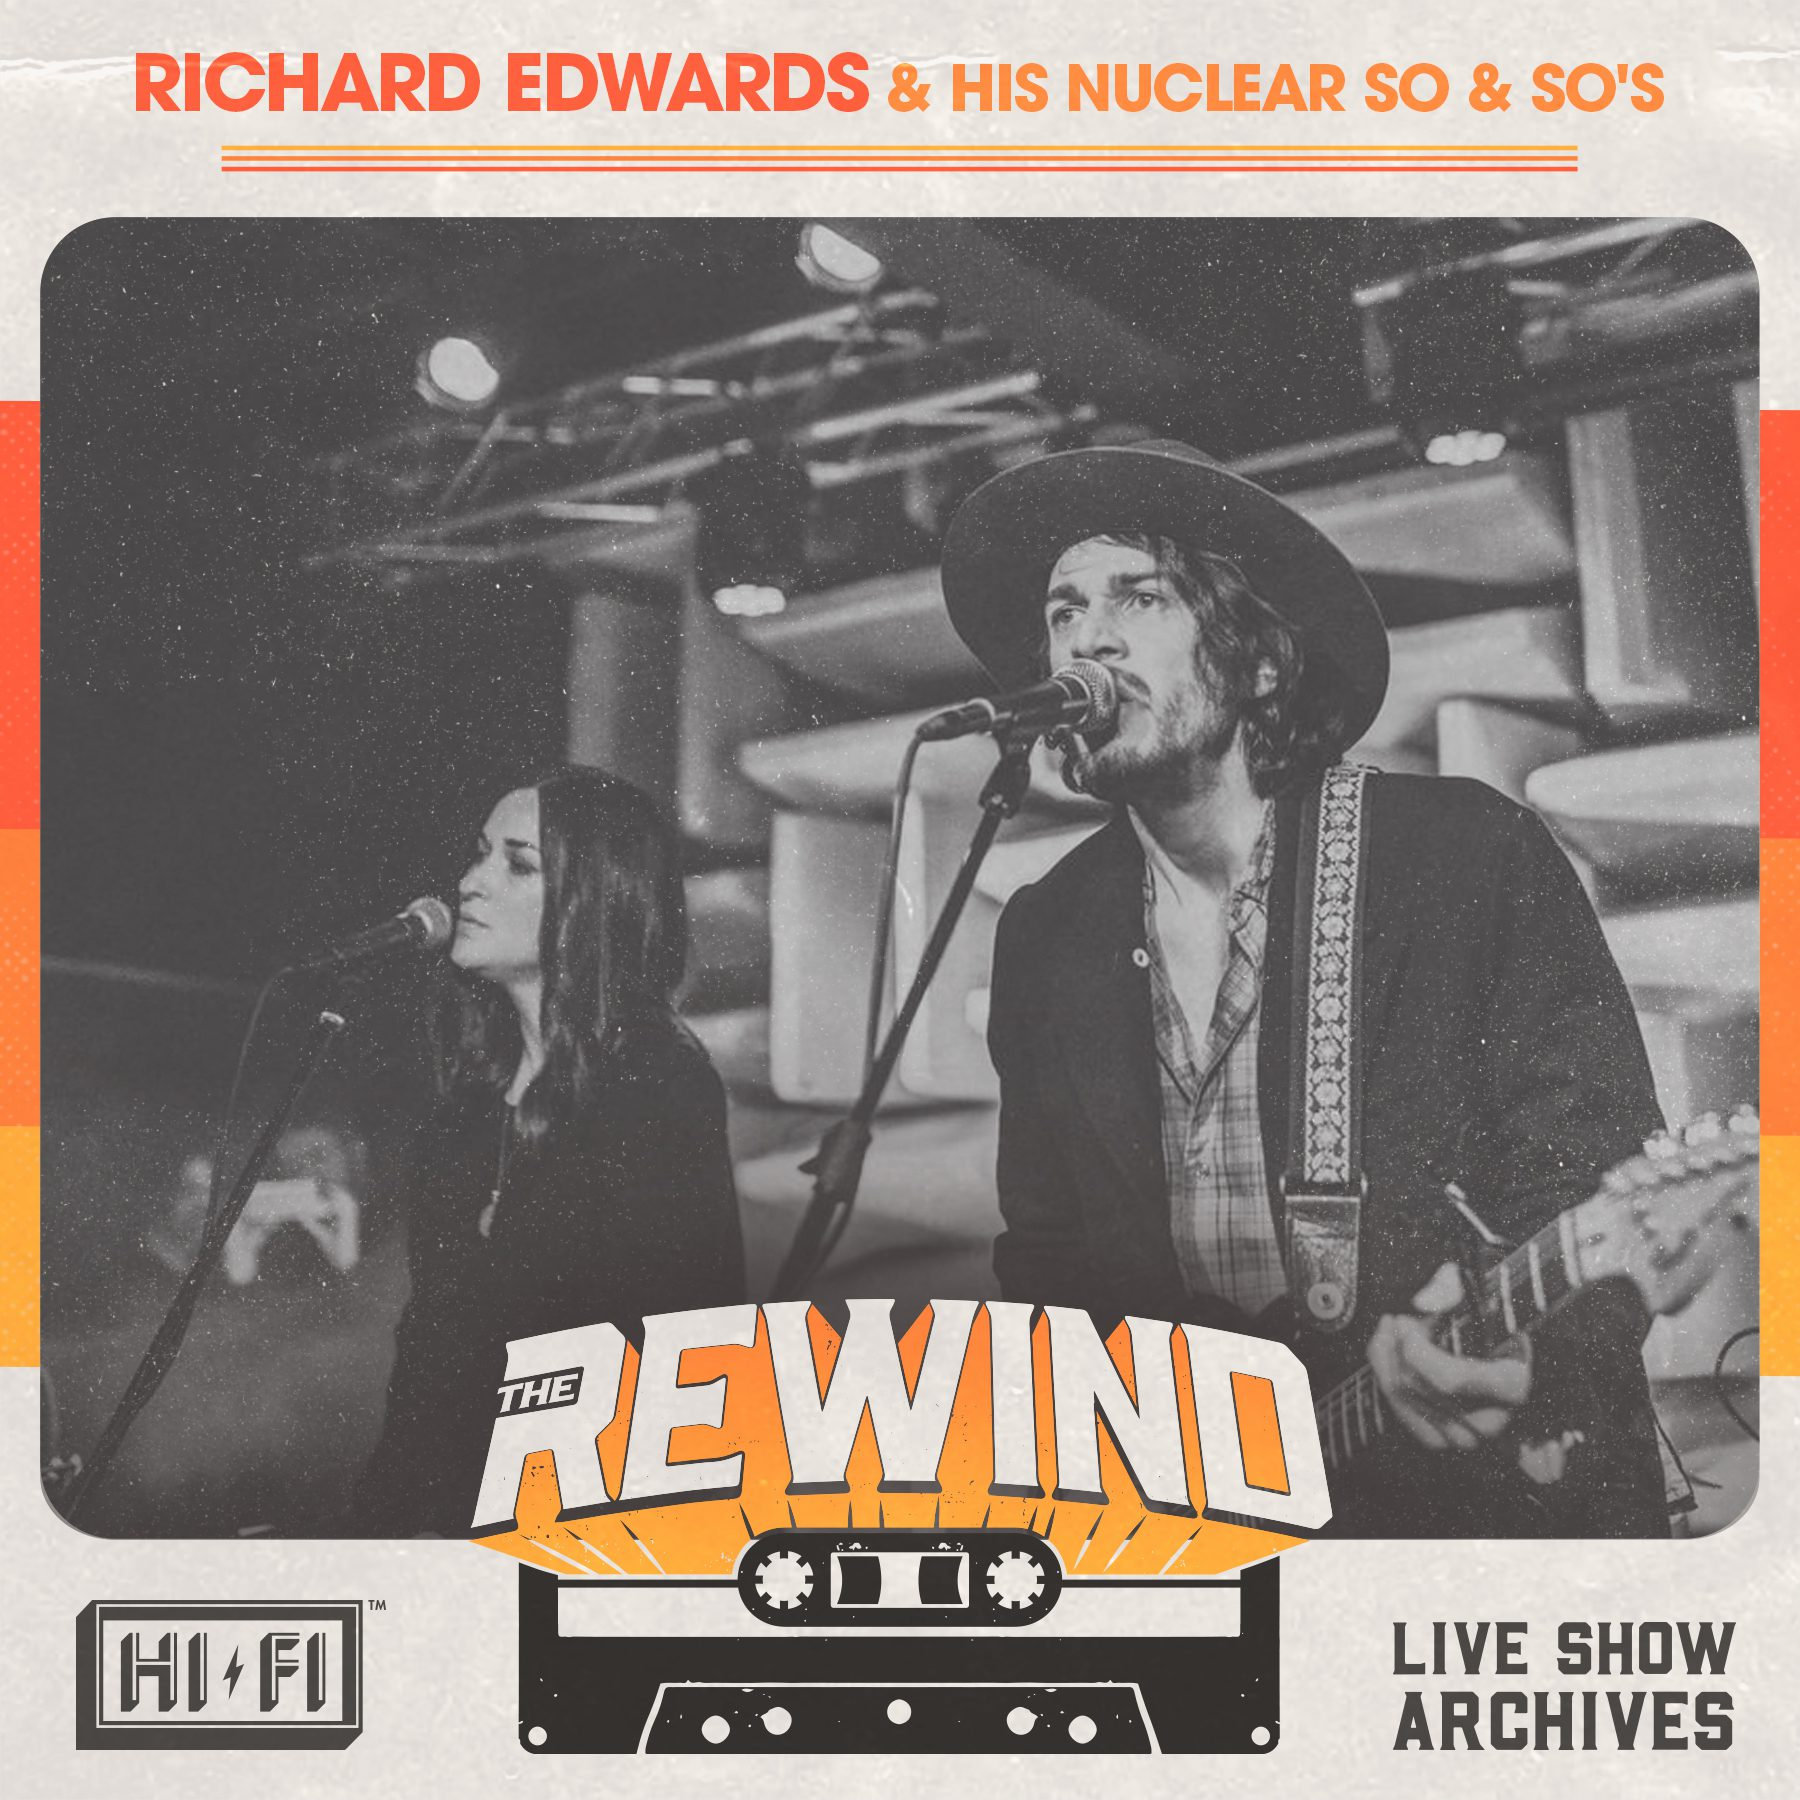 richard edwards, margot and the nuclear so and so's, hifi, new years eve, nye